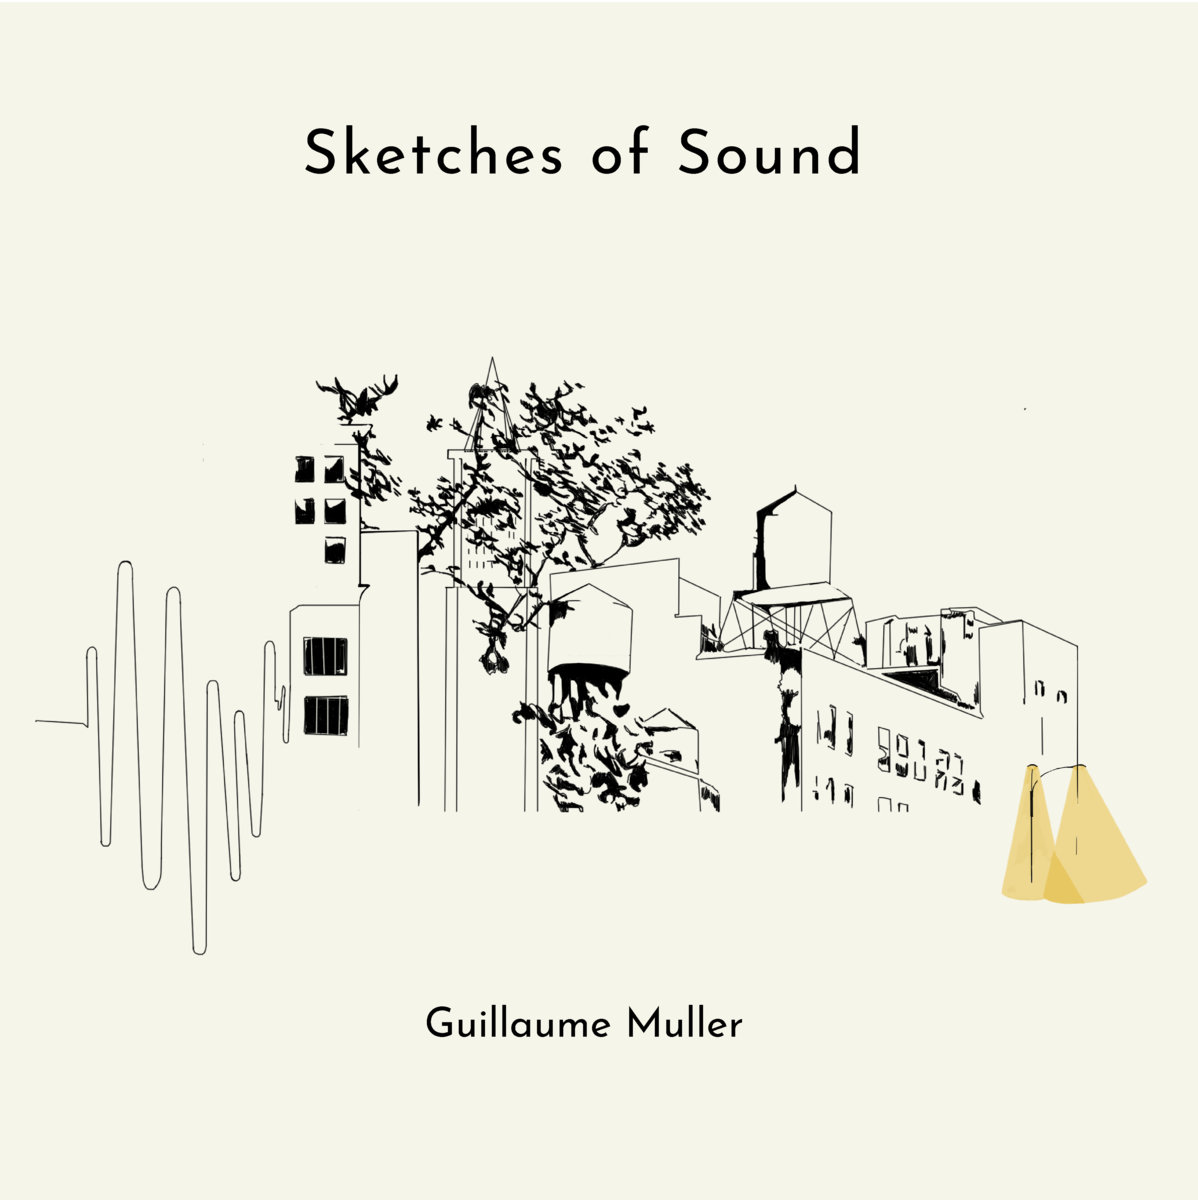 Guillaume Muller, Sketches of Sound | The Vinyl Anachronist